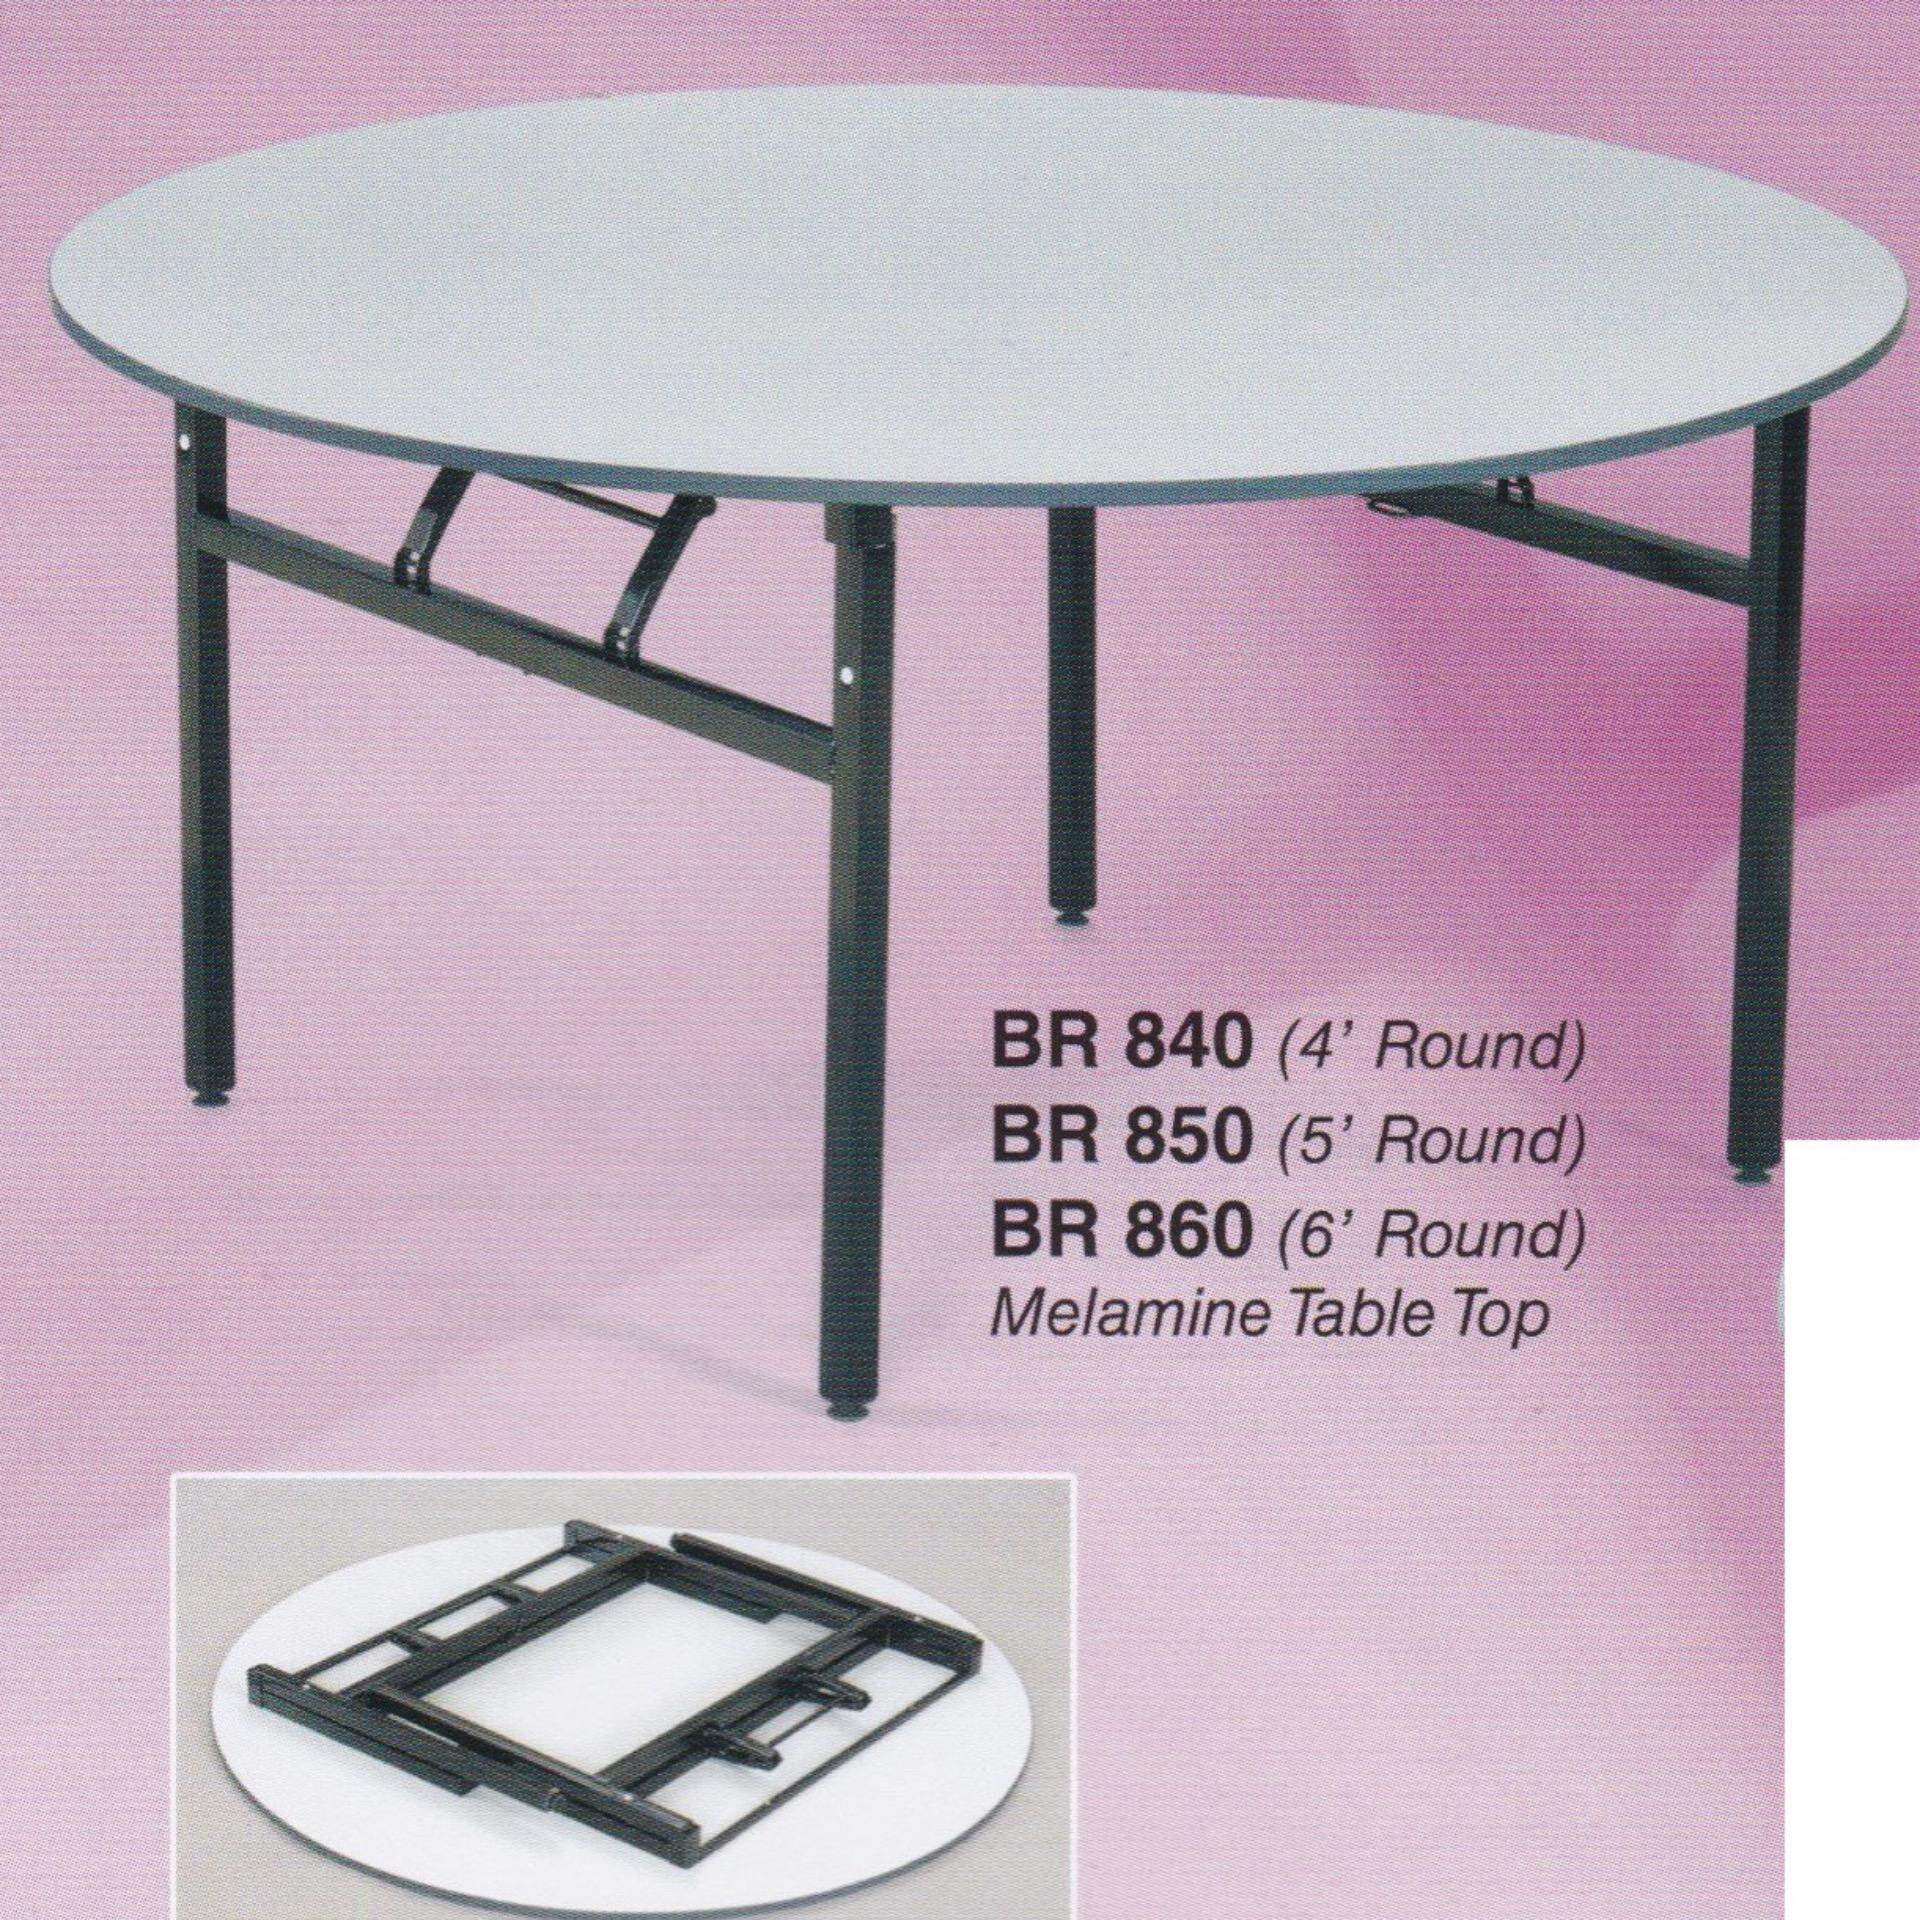 5-Feet Round Foldable Banquet Table With Thick Table Top L1524MM x H750MM